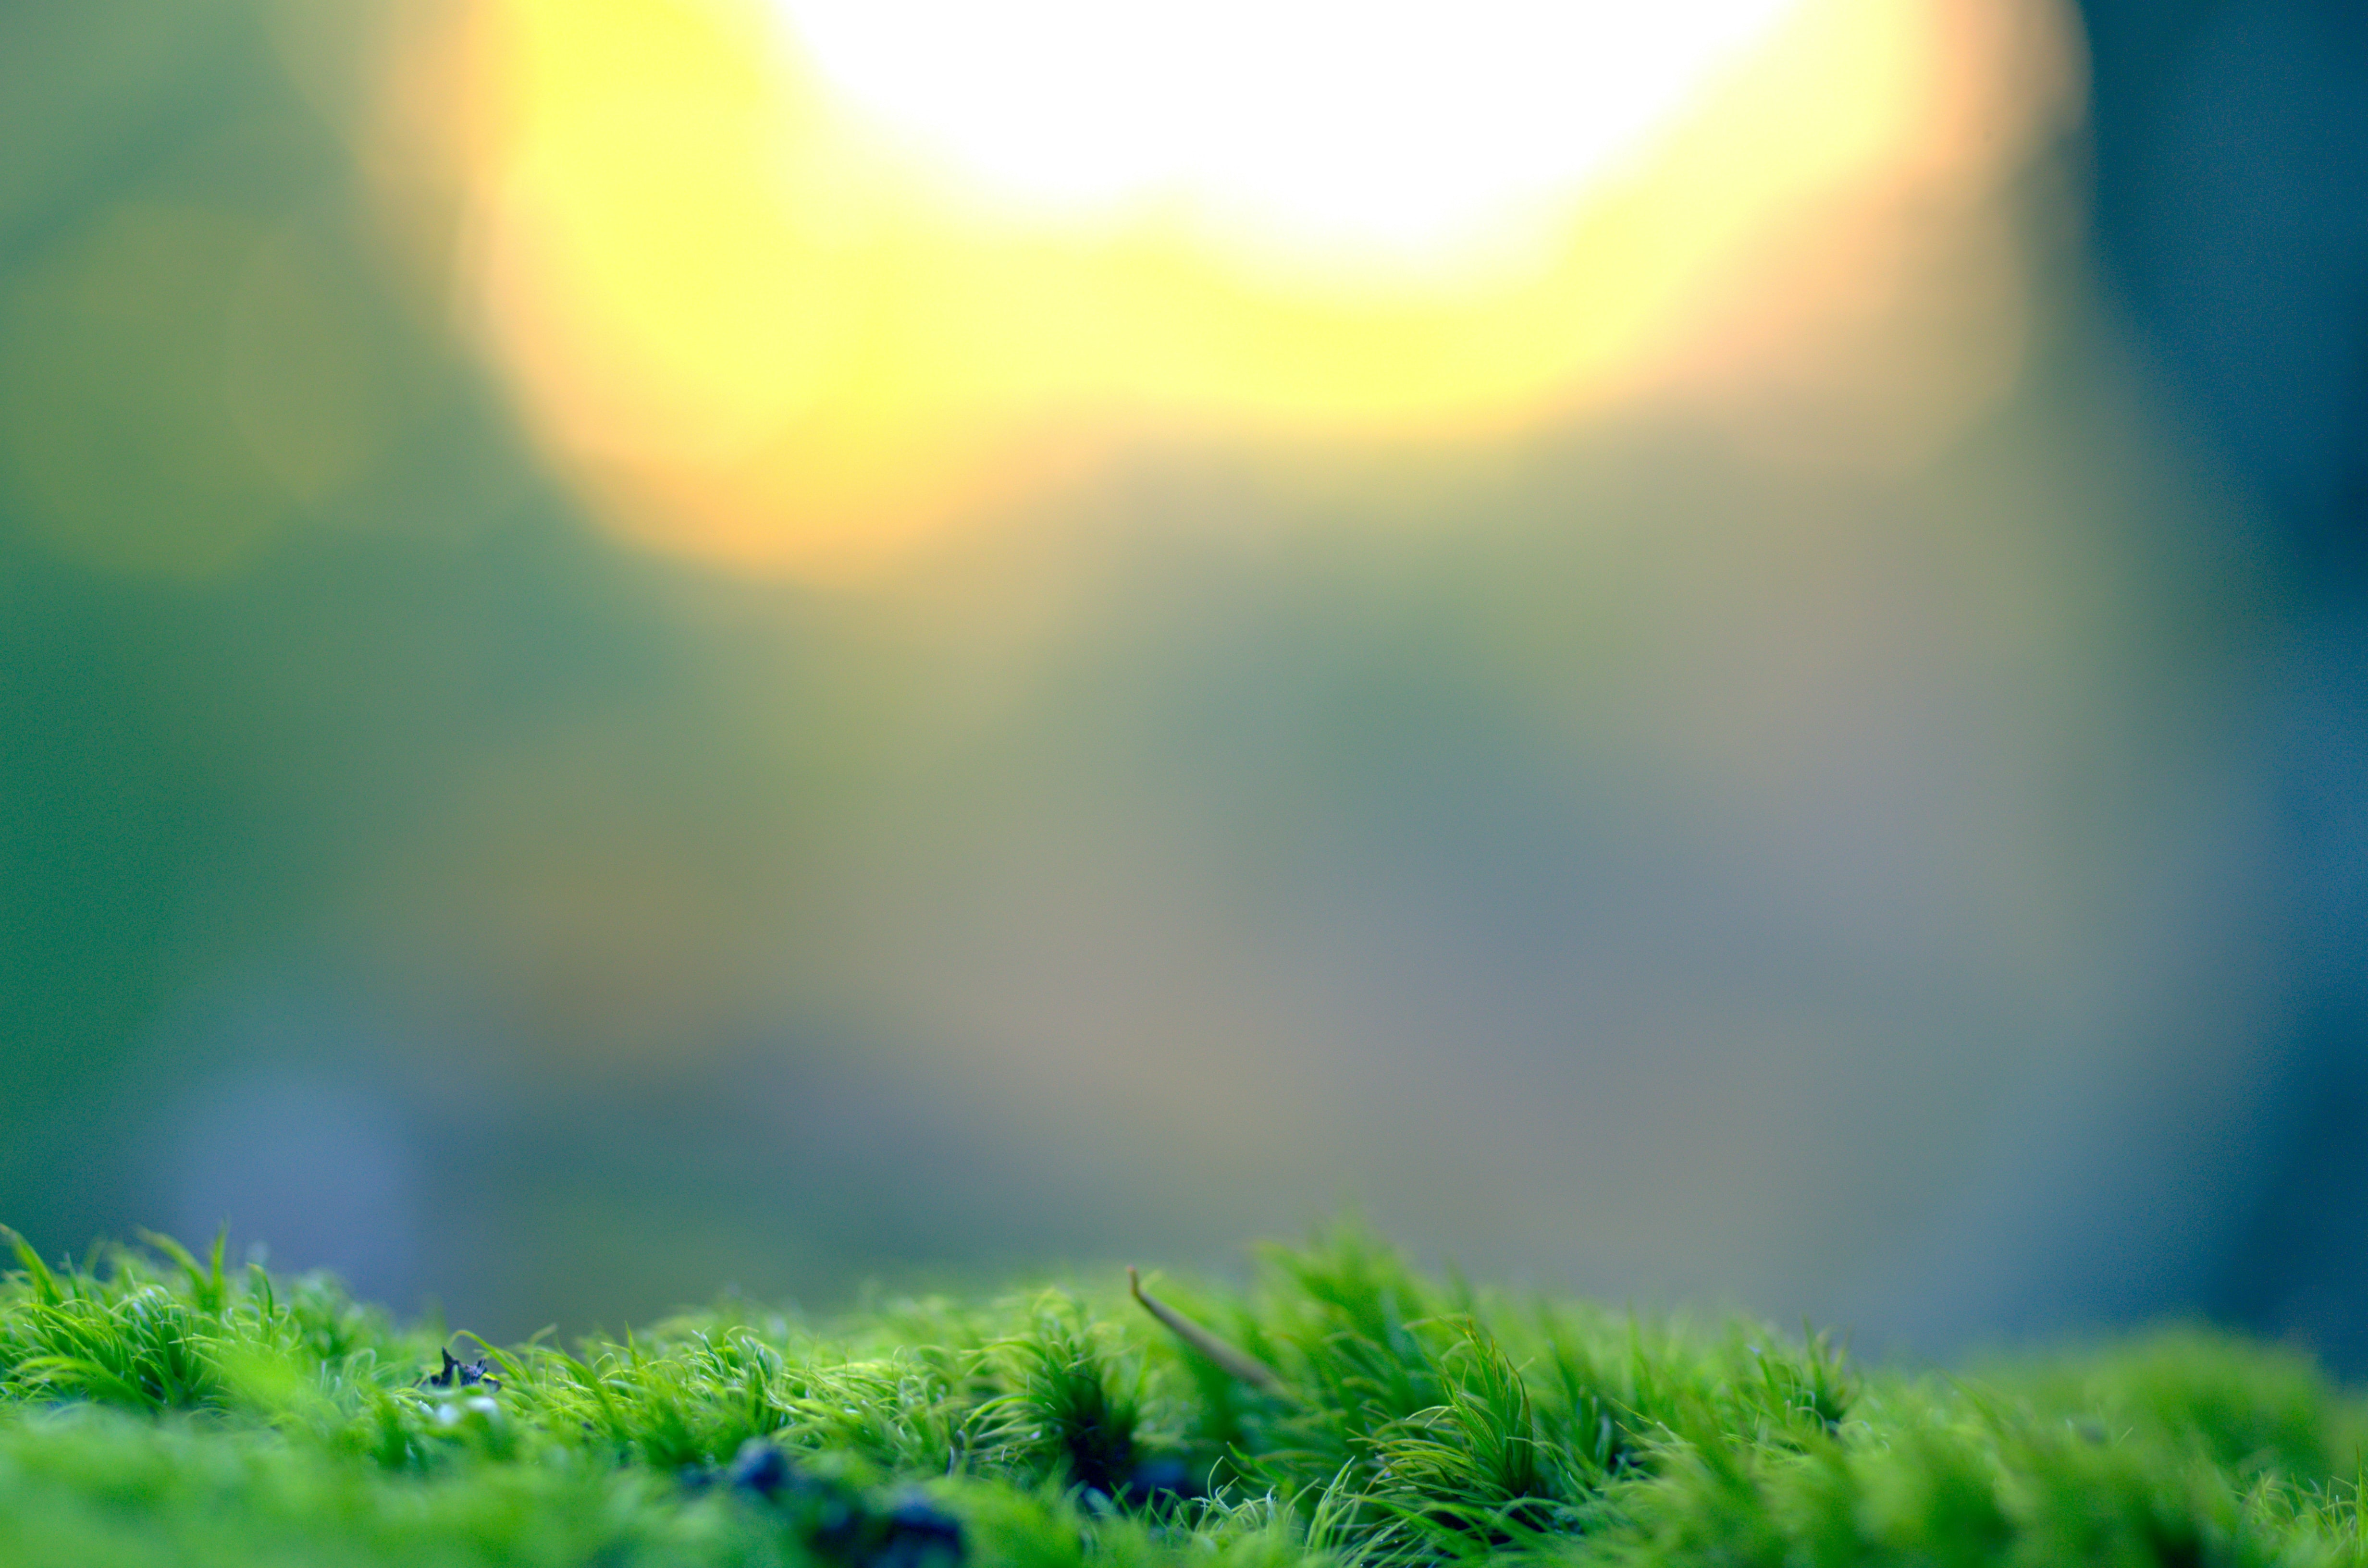 Tiny blades of a lush green grass under a blurry light